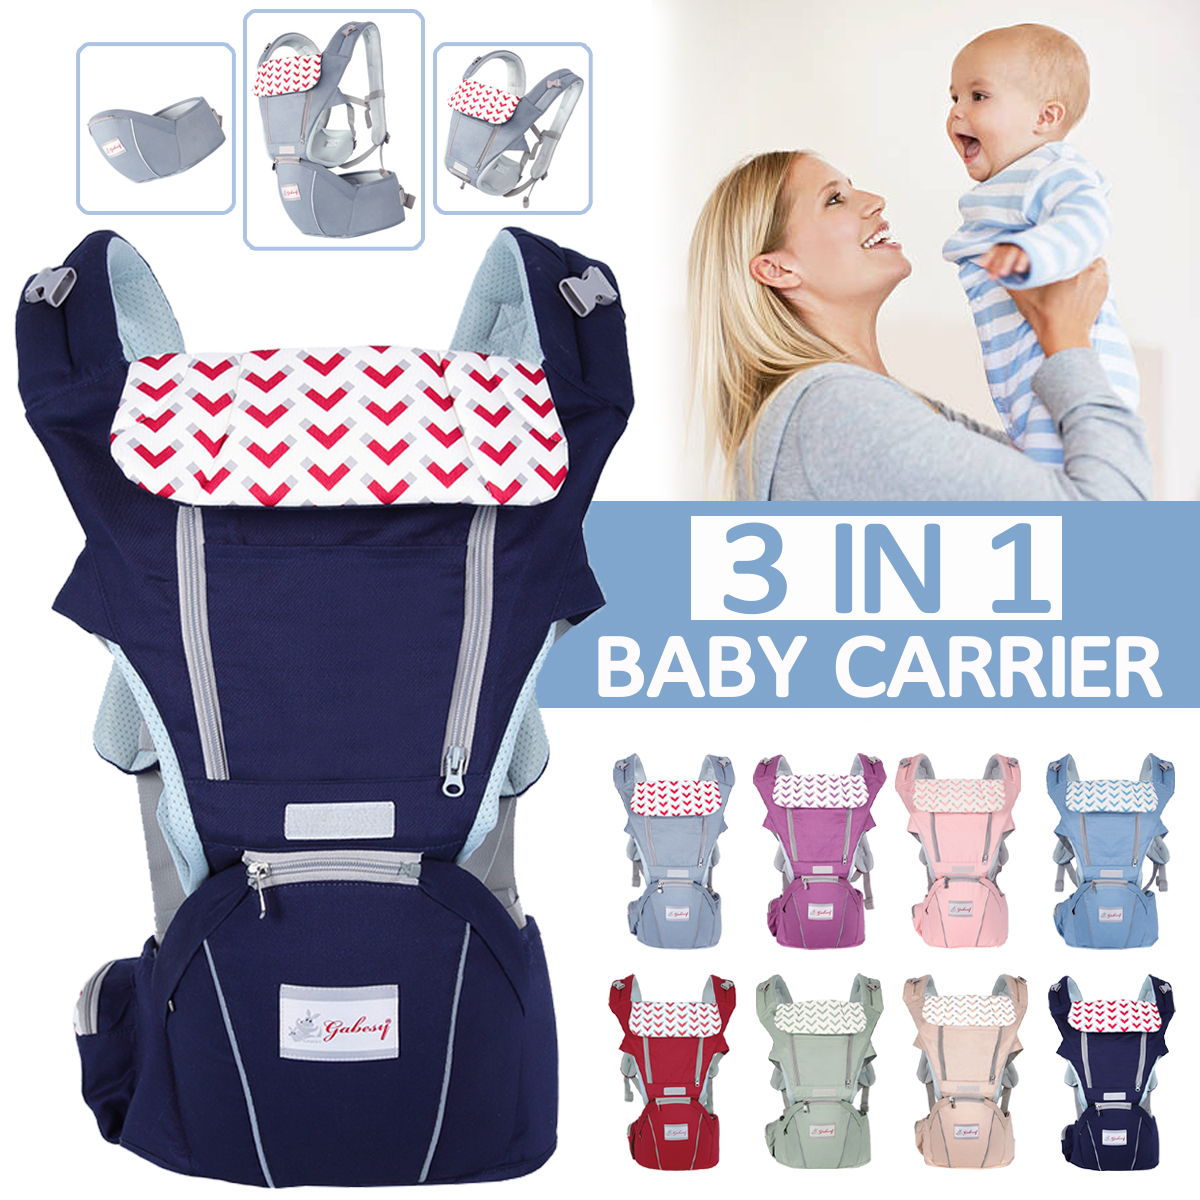 0-36 Months 3 in 1 Breathable Front Baby Carriers Waist Stool Infant Comfortable Wrap Sling Backpack